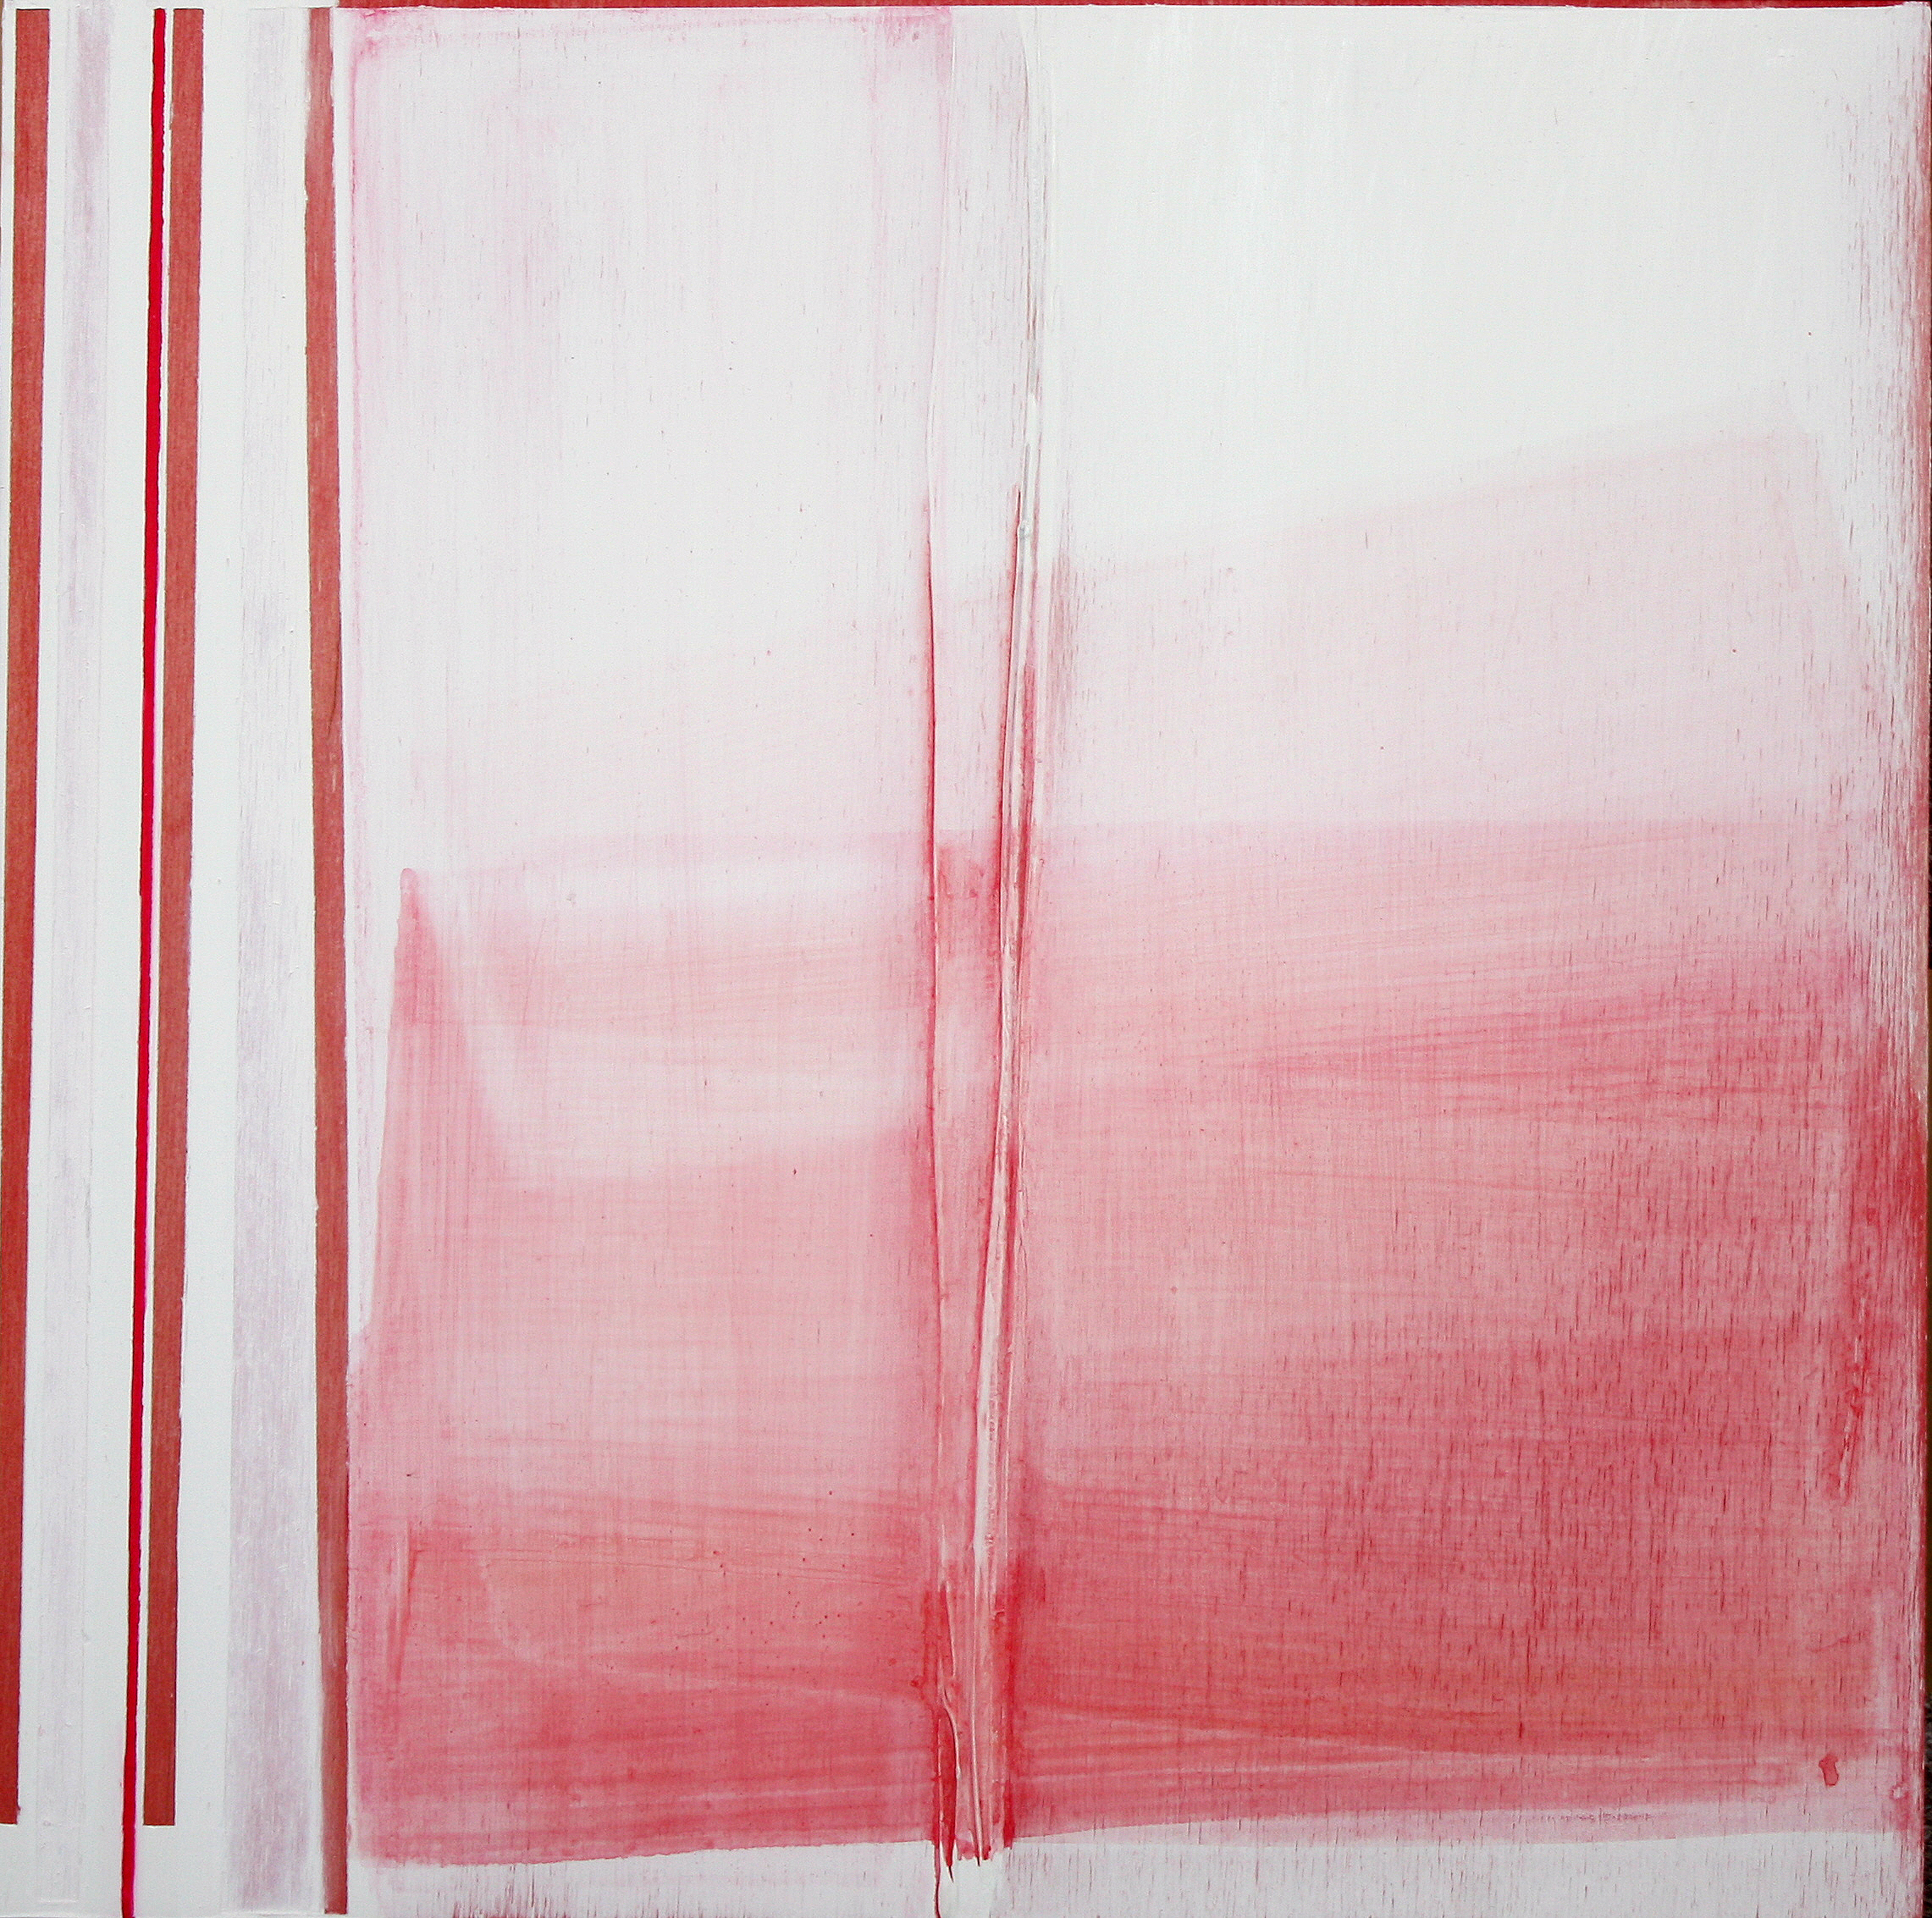 Untitled (red white), 2012